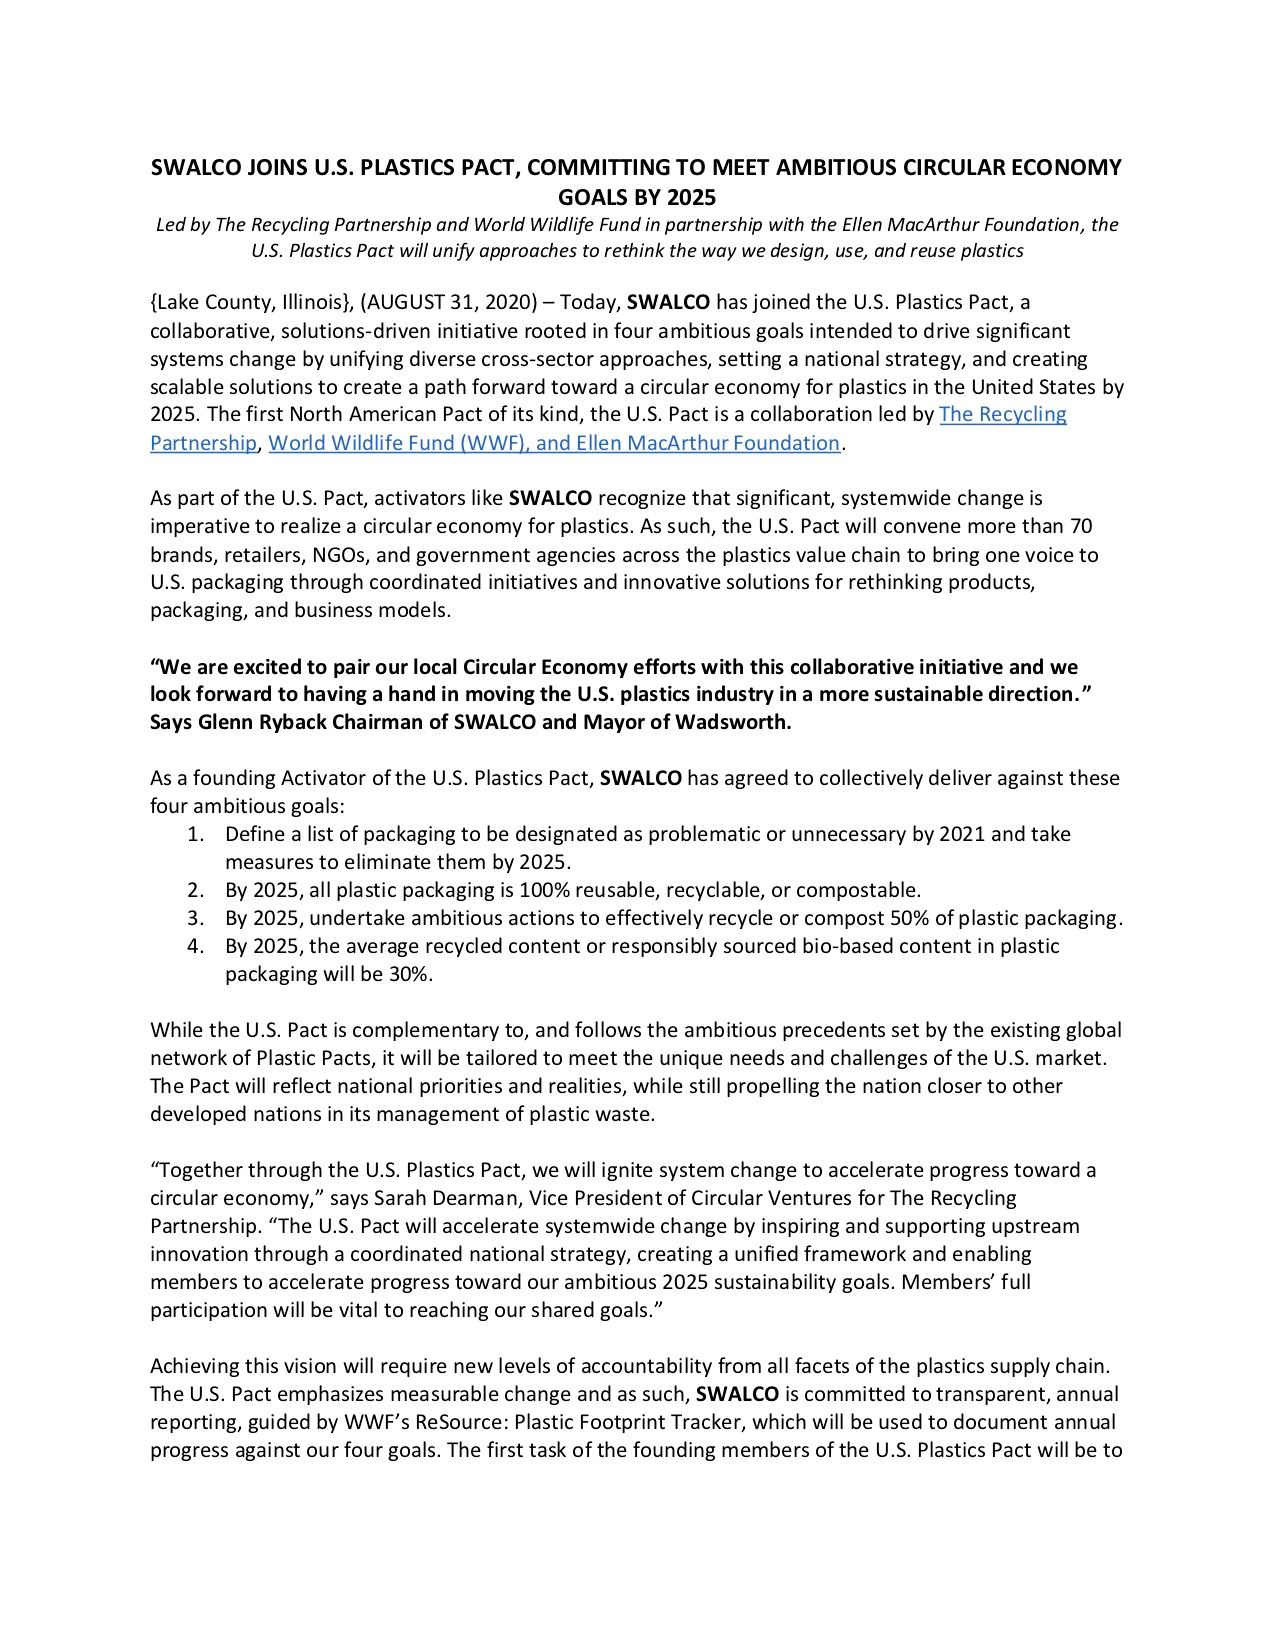 US Plastics Pact Press release